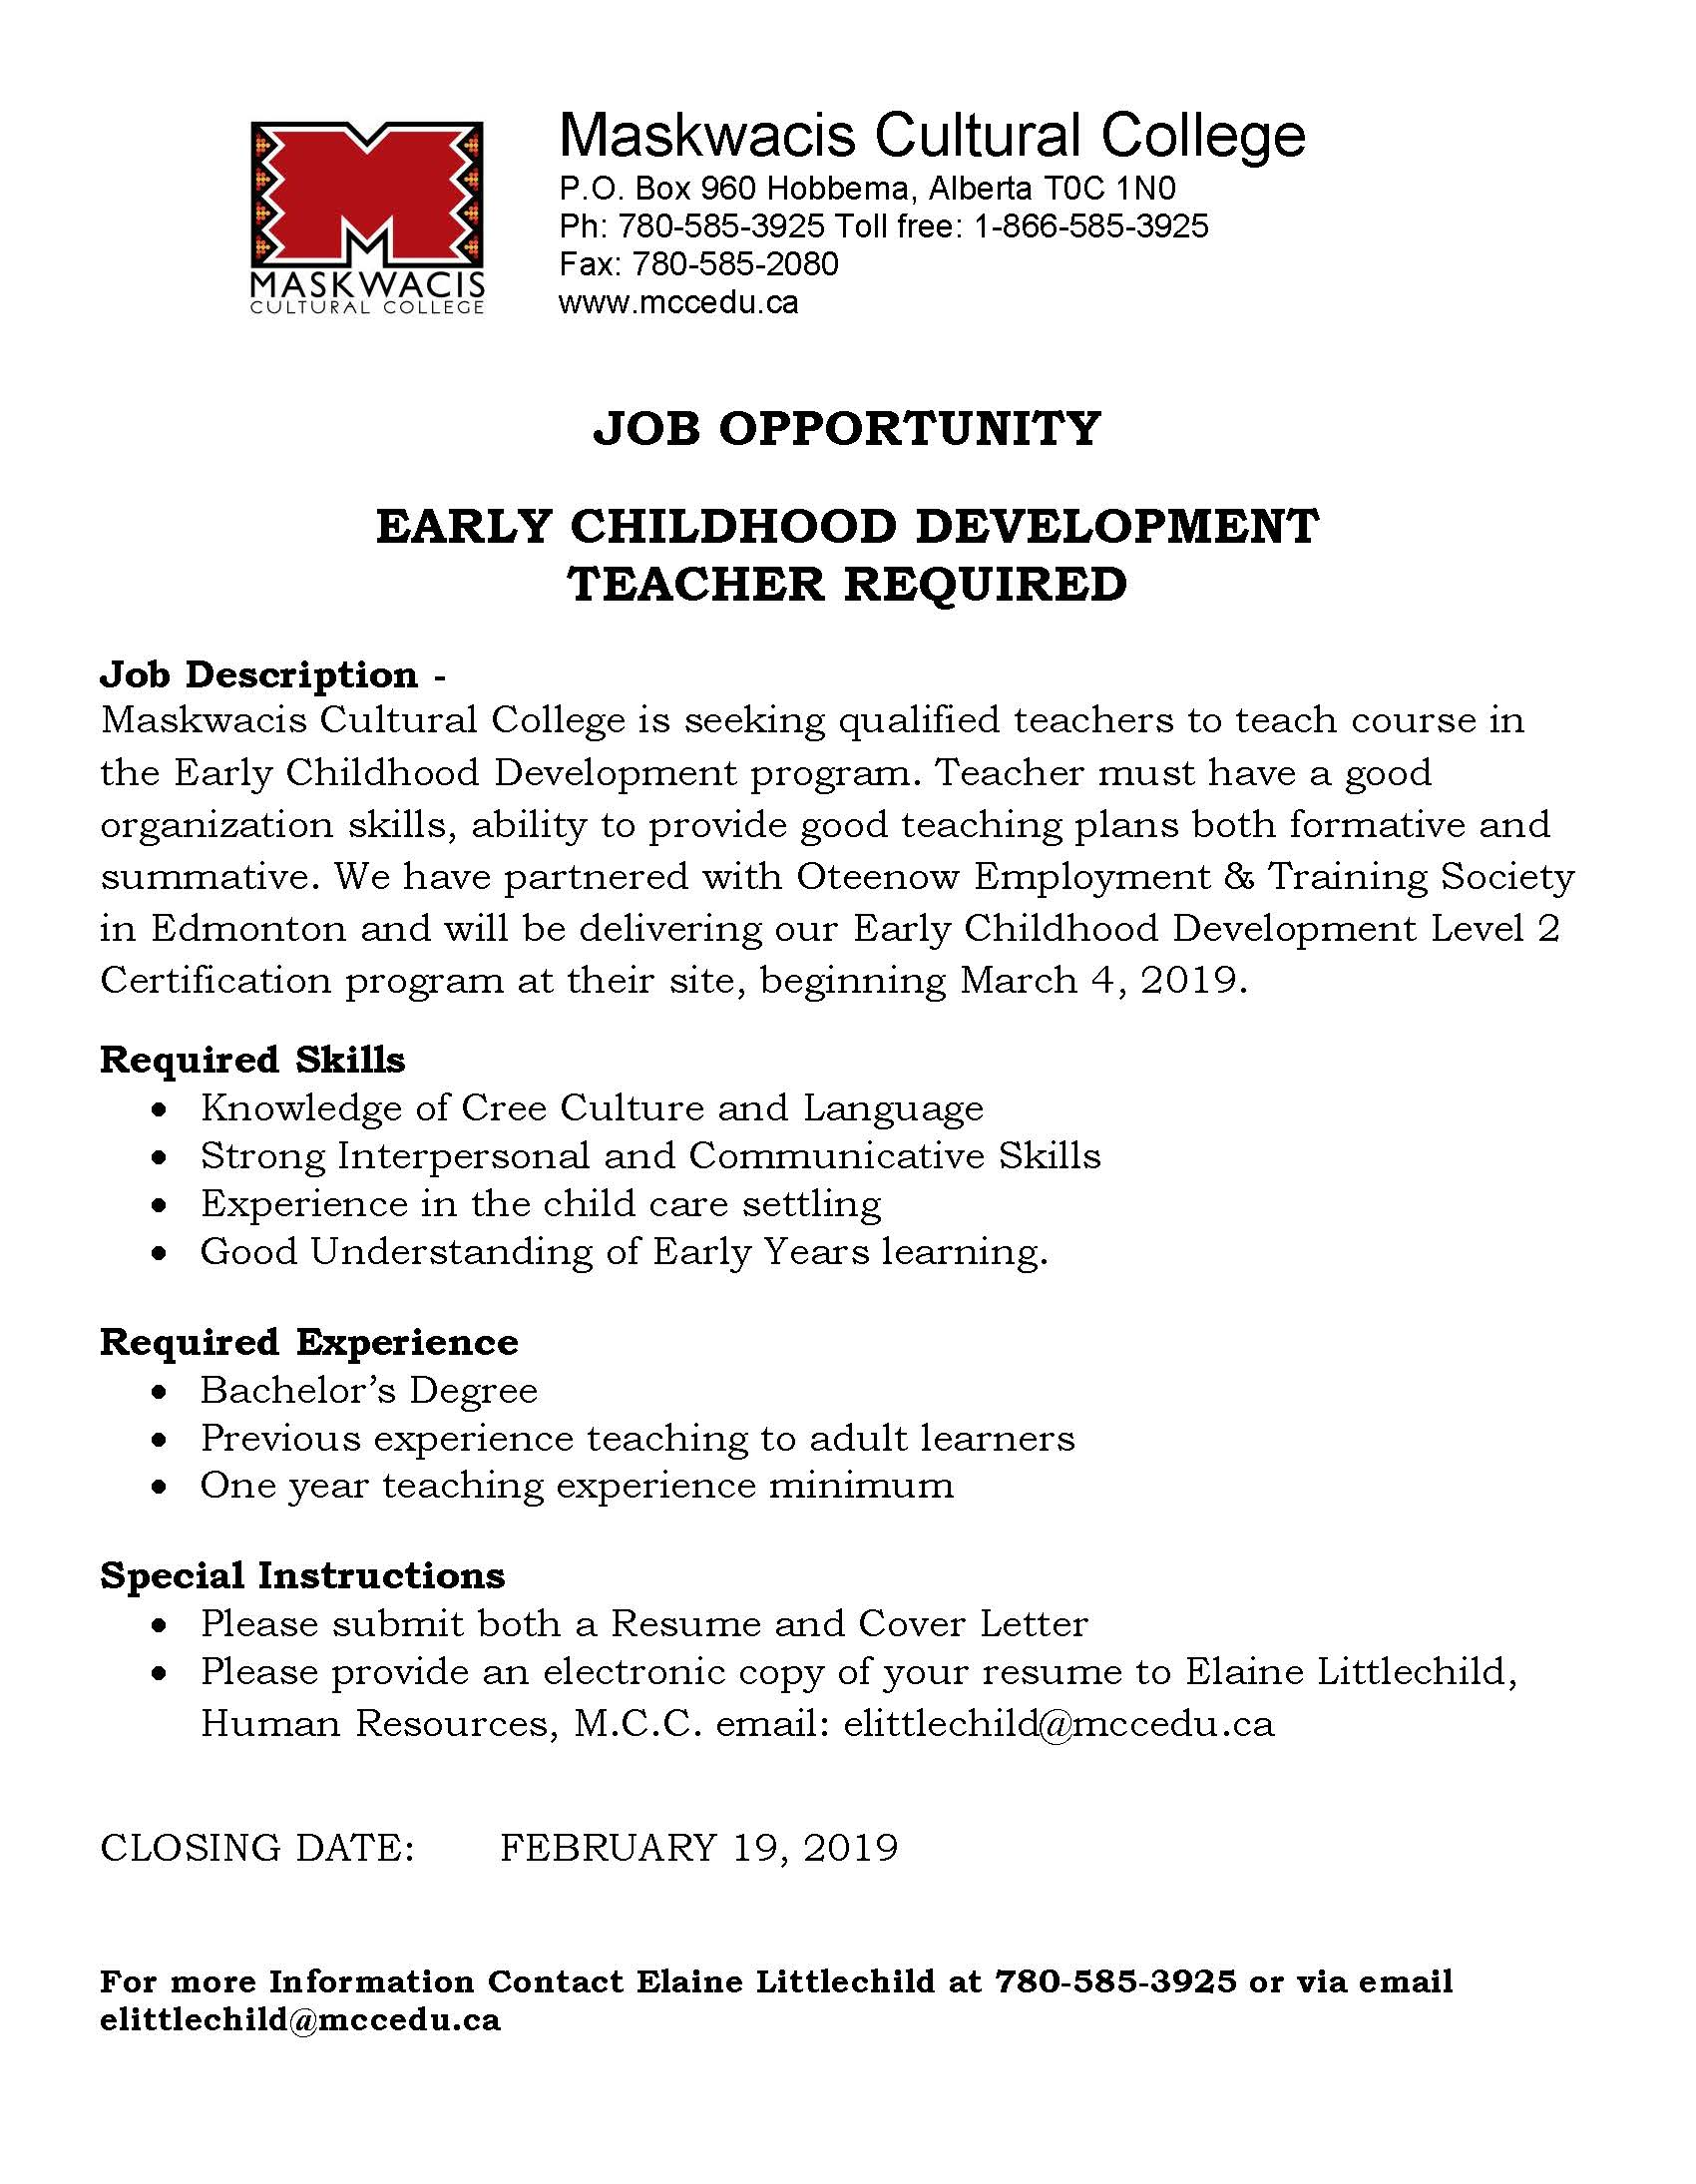 Careers at MCC | Maskwacis Cultural College